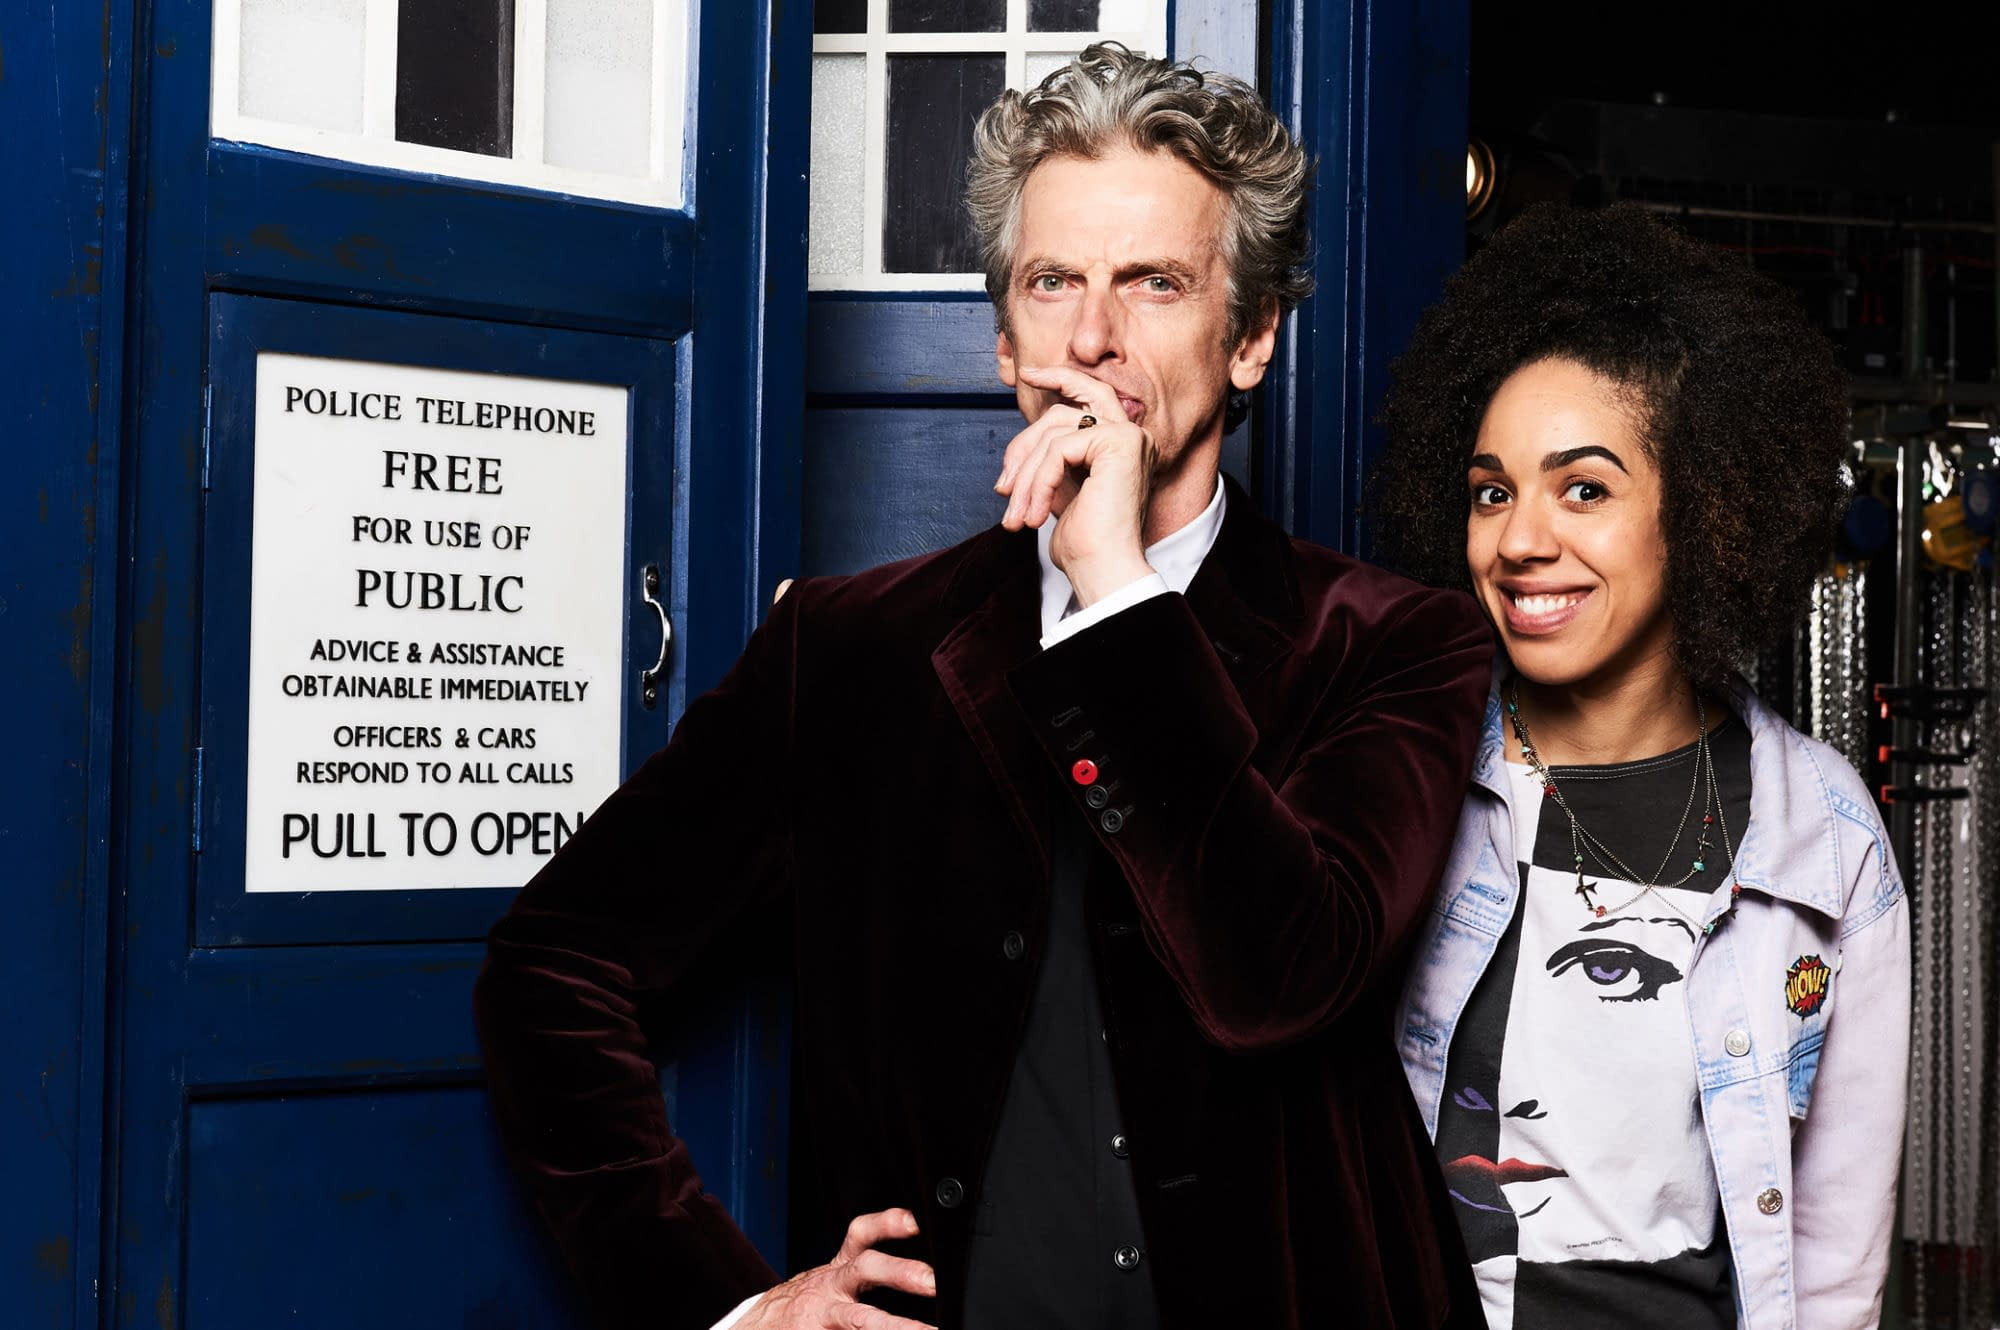 """Doctor Who"": 5 Subtle Details That Create Mind-Blowing Science Fiction [OPINION]"